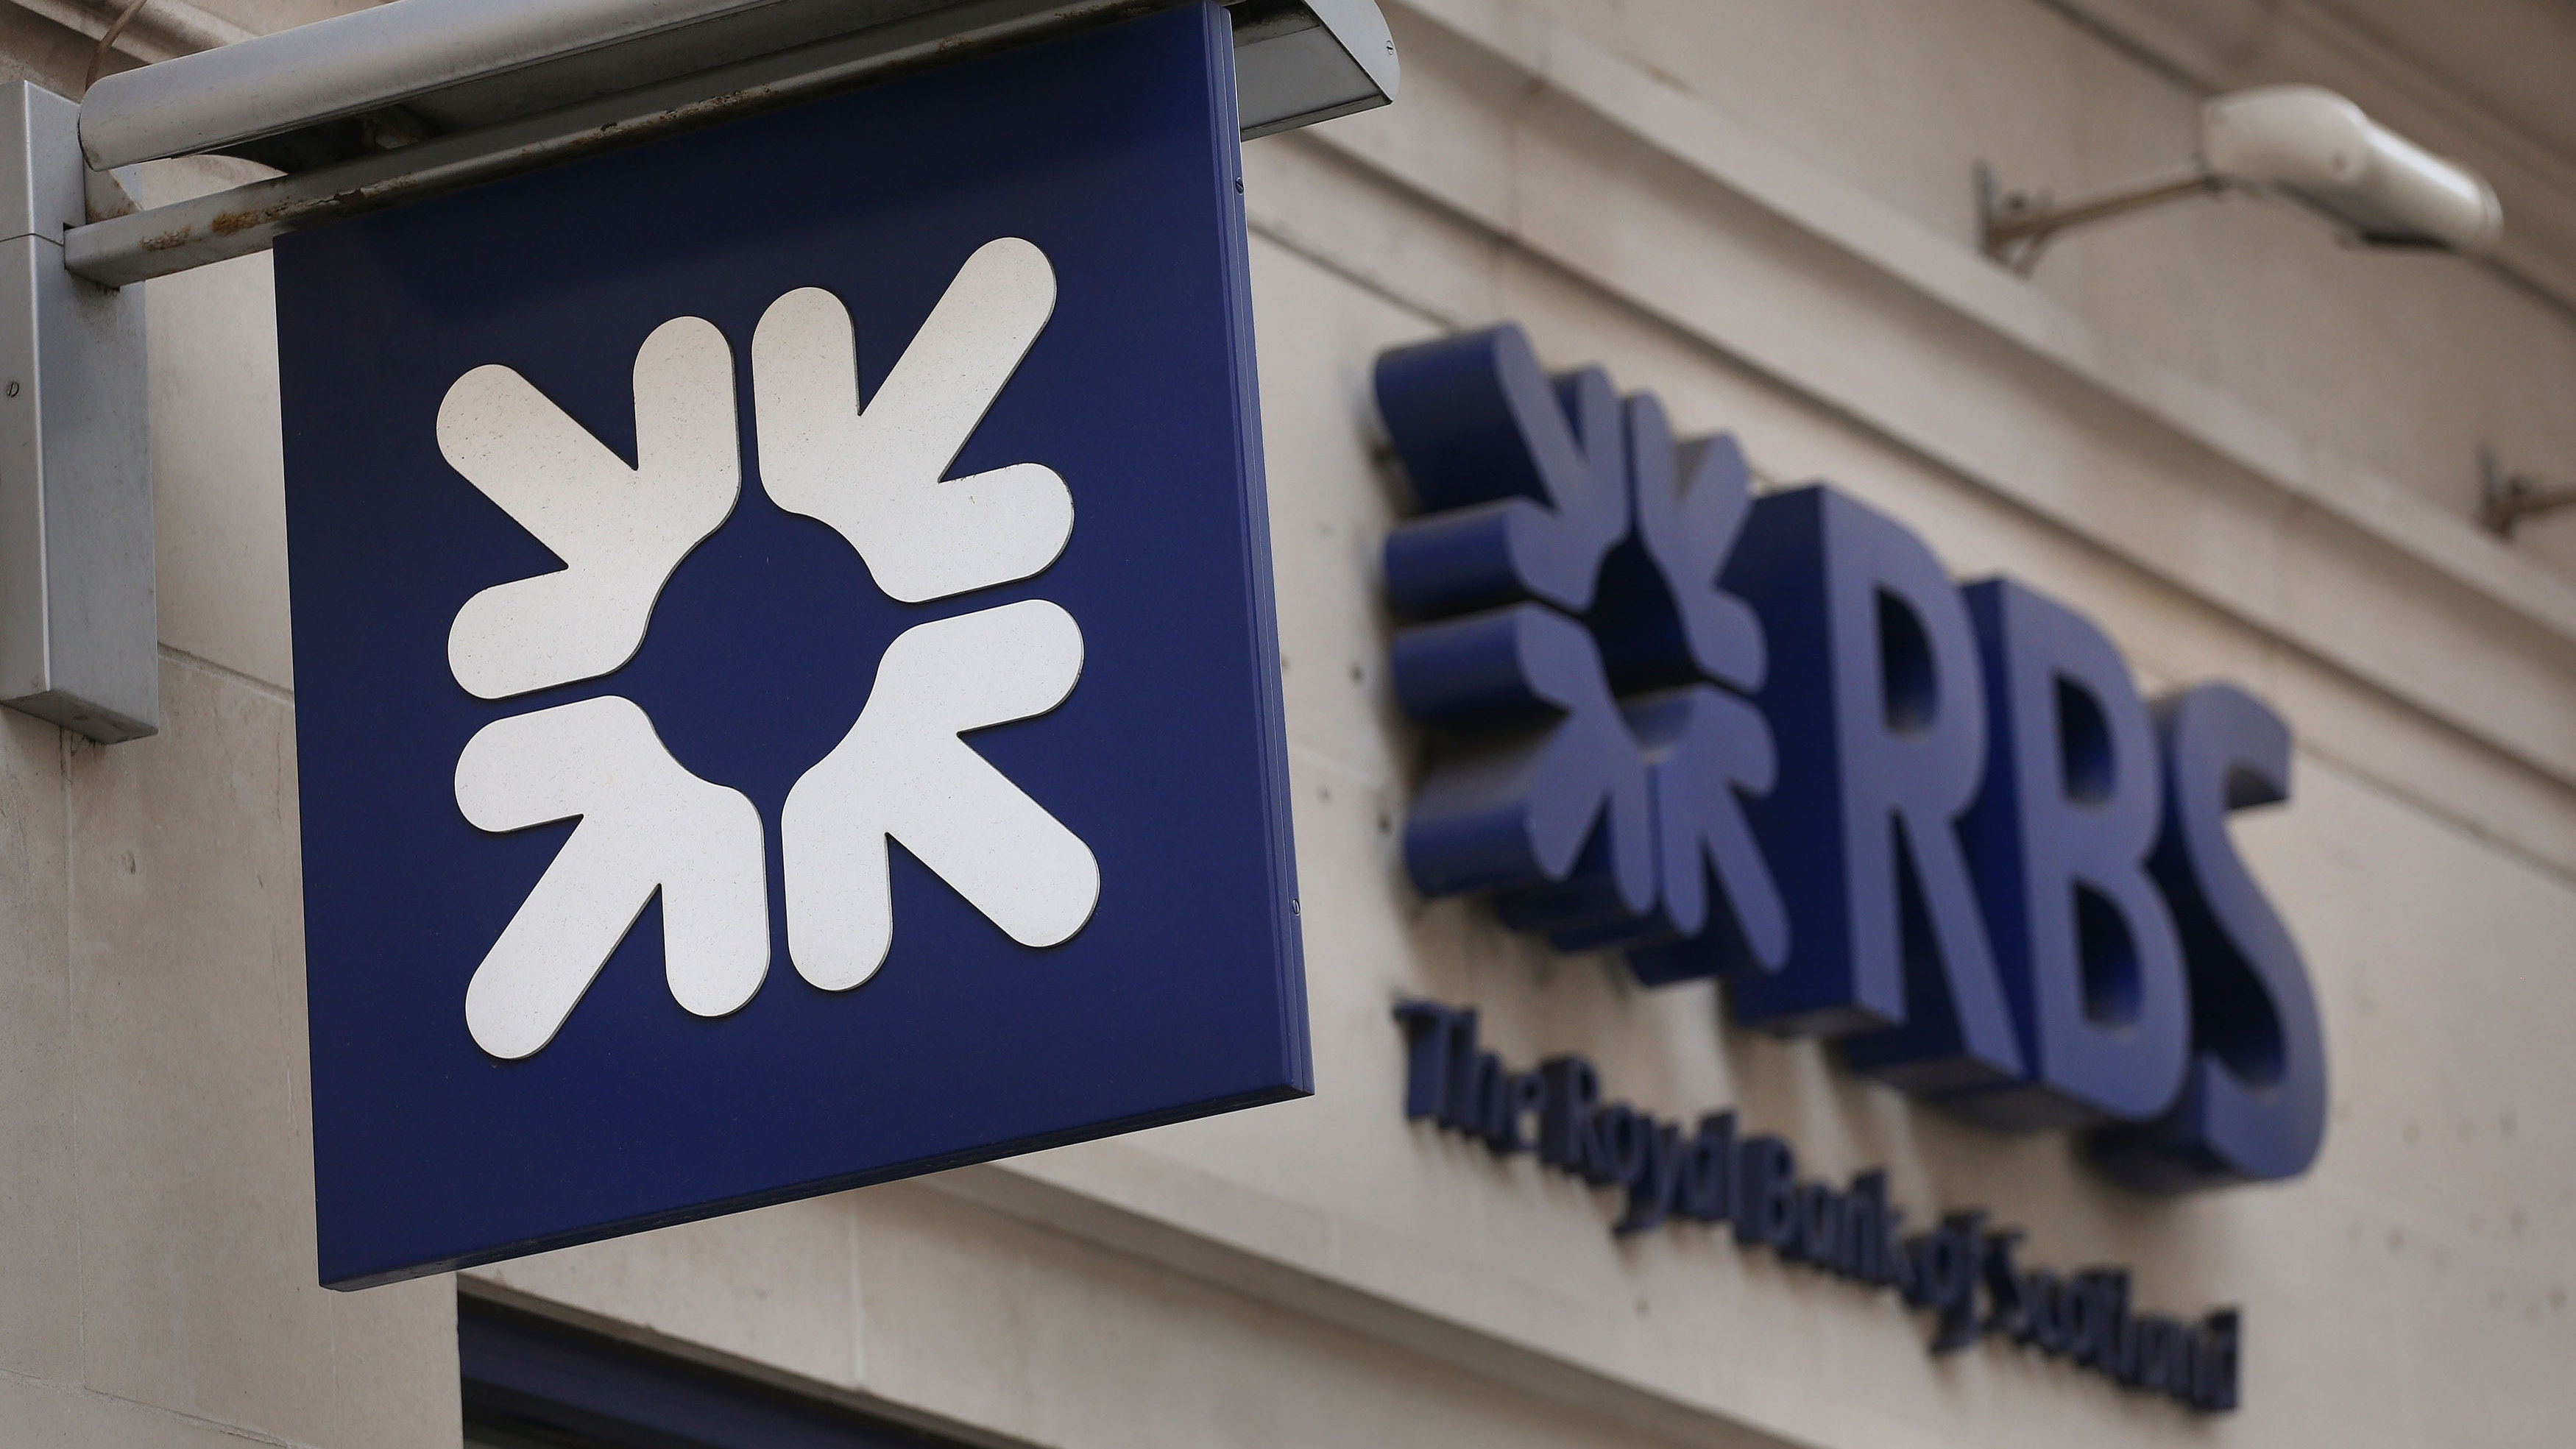 United Kingdom regulator resists parliament request to publish RBS report